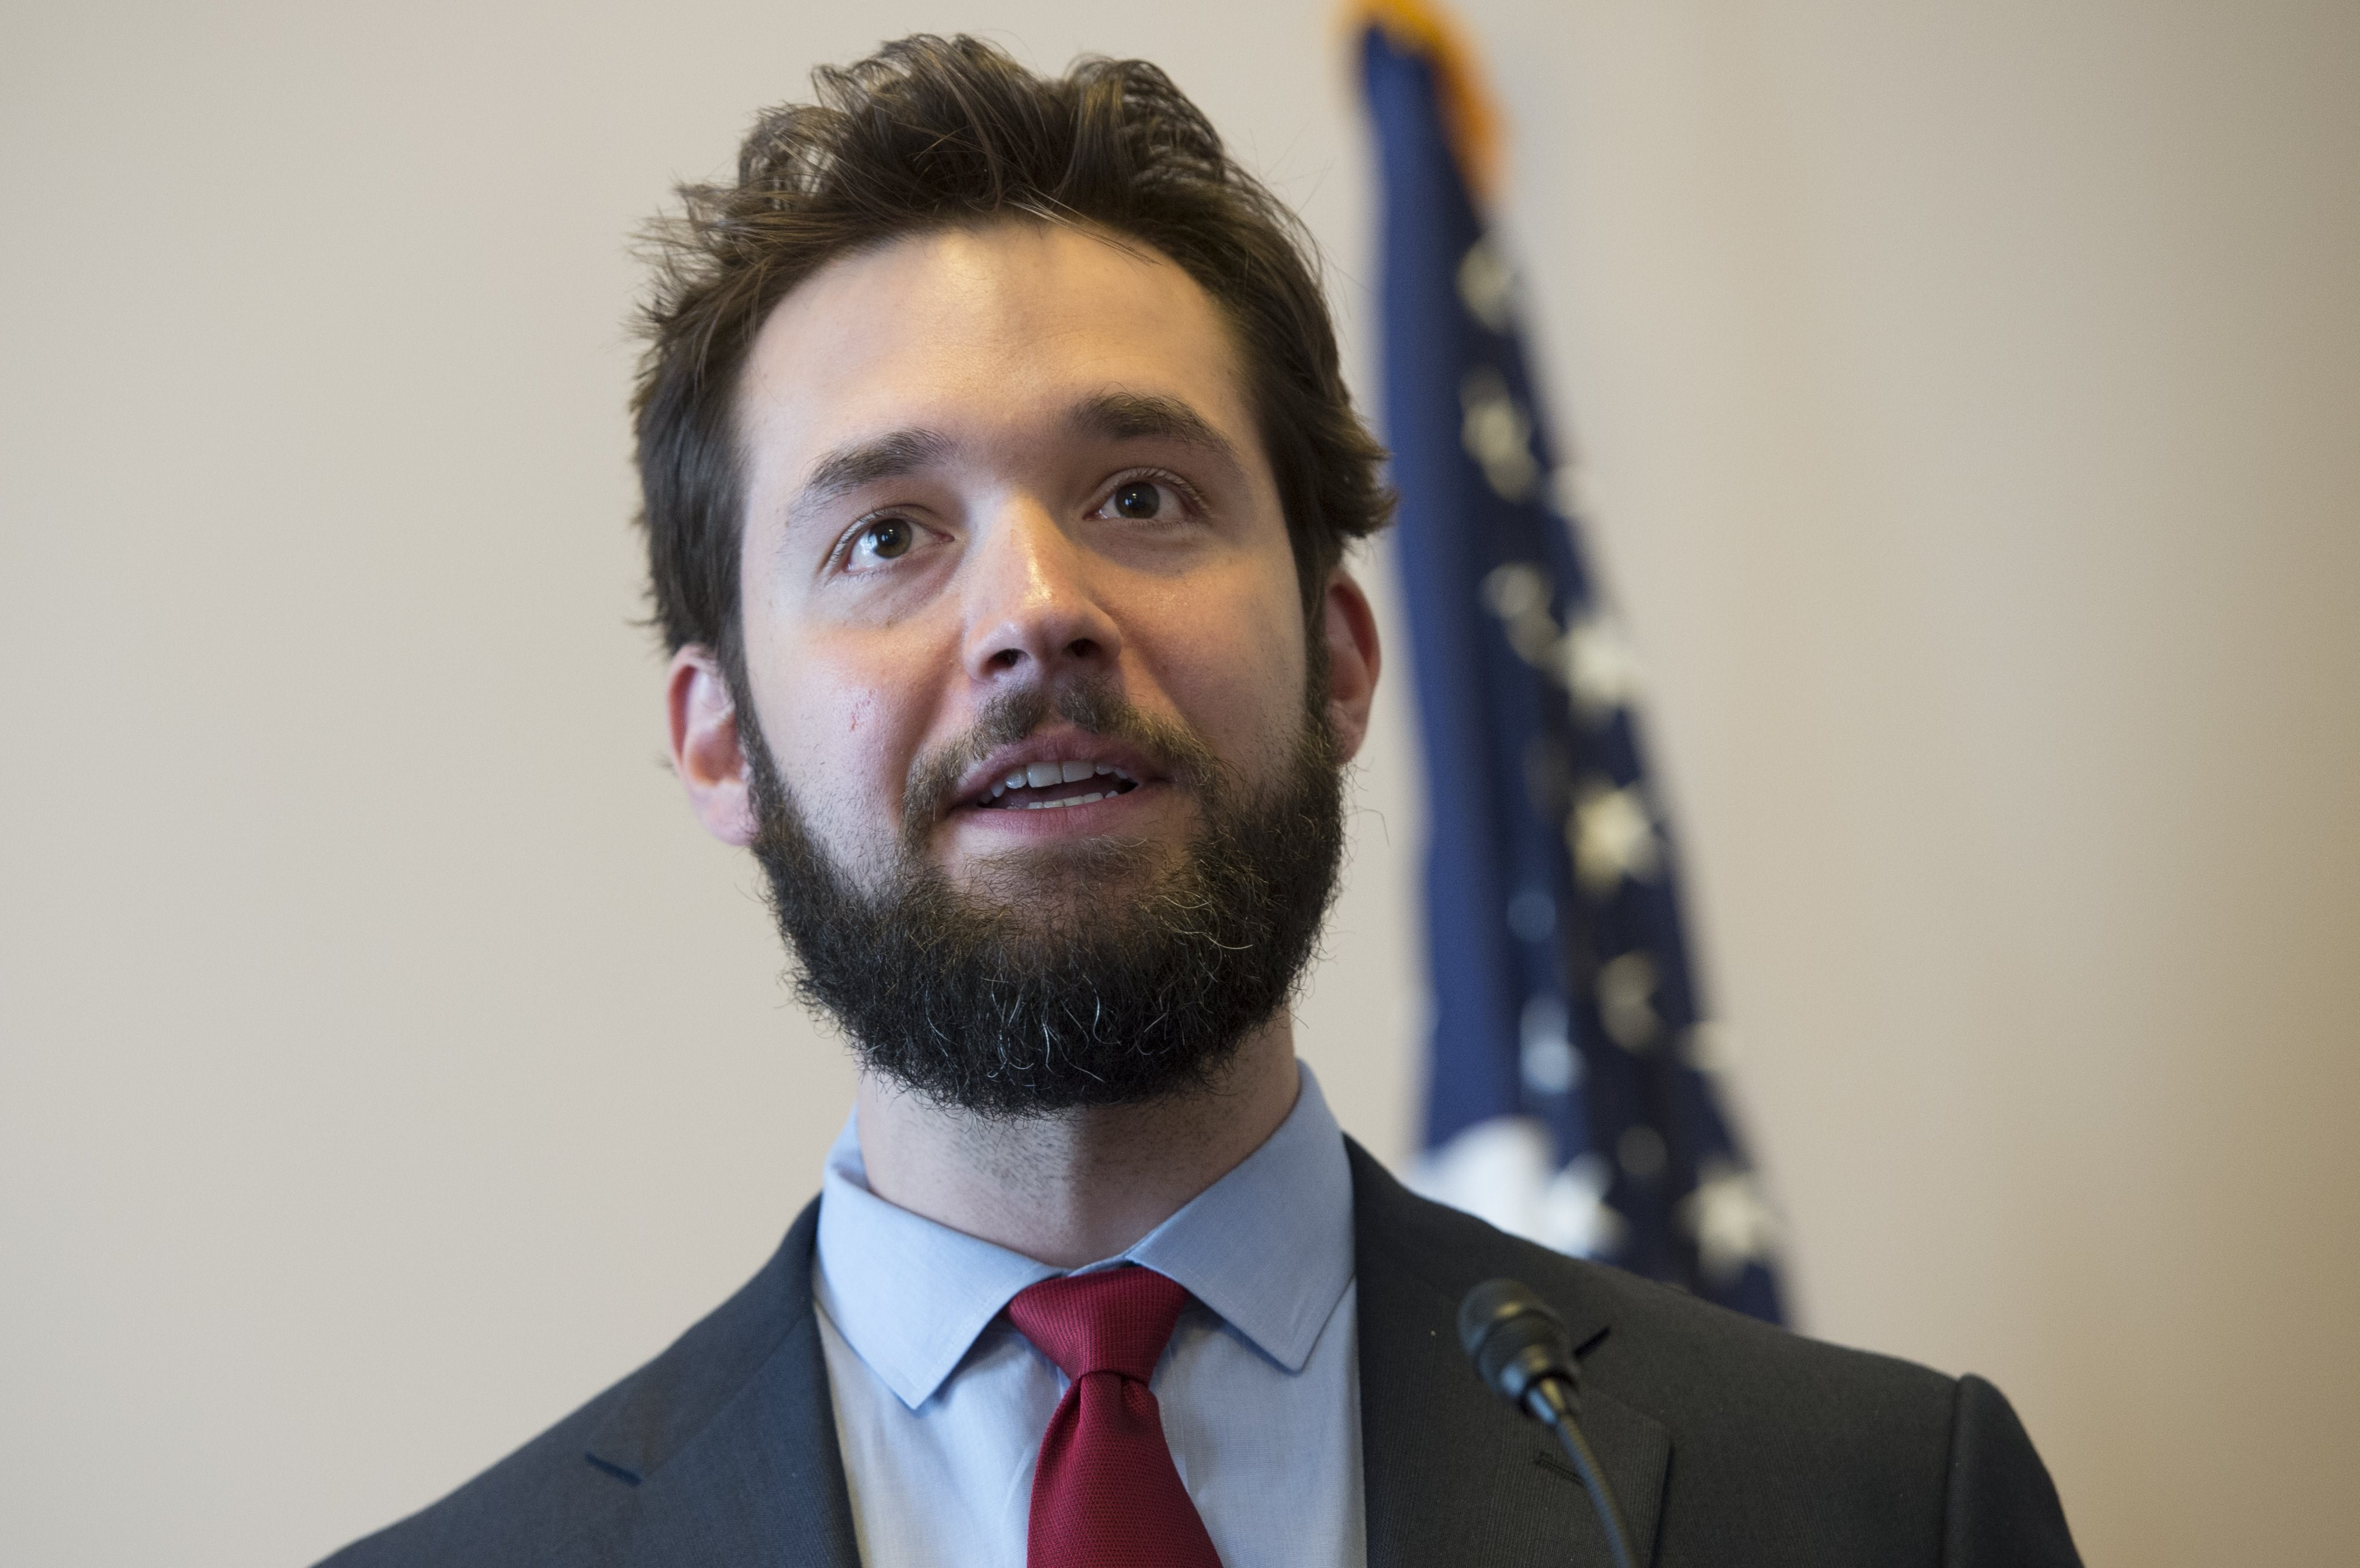 Alexis Ohanian, investor and founder of Reddit, speaks about net neutrality for the Internet during a discussion hosted by the Free Press Action Fund on Capitol Hill in Washington on July 8, 2014.